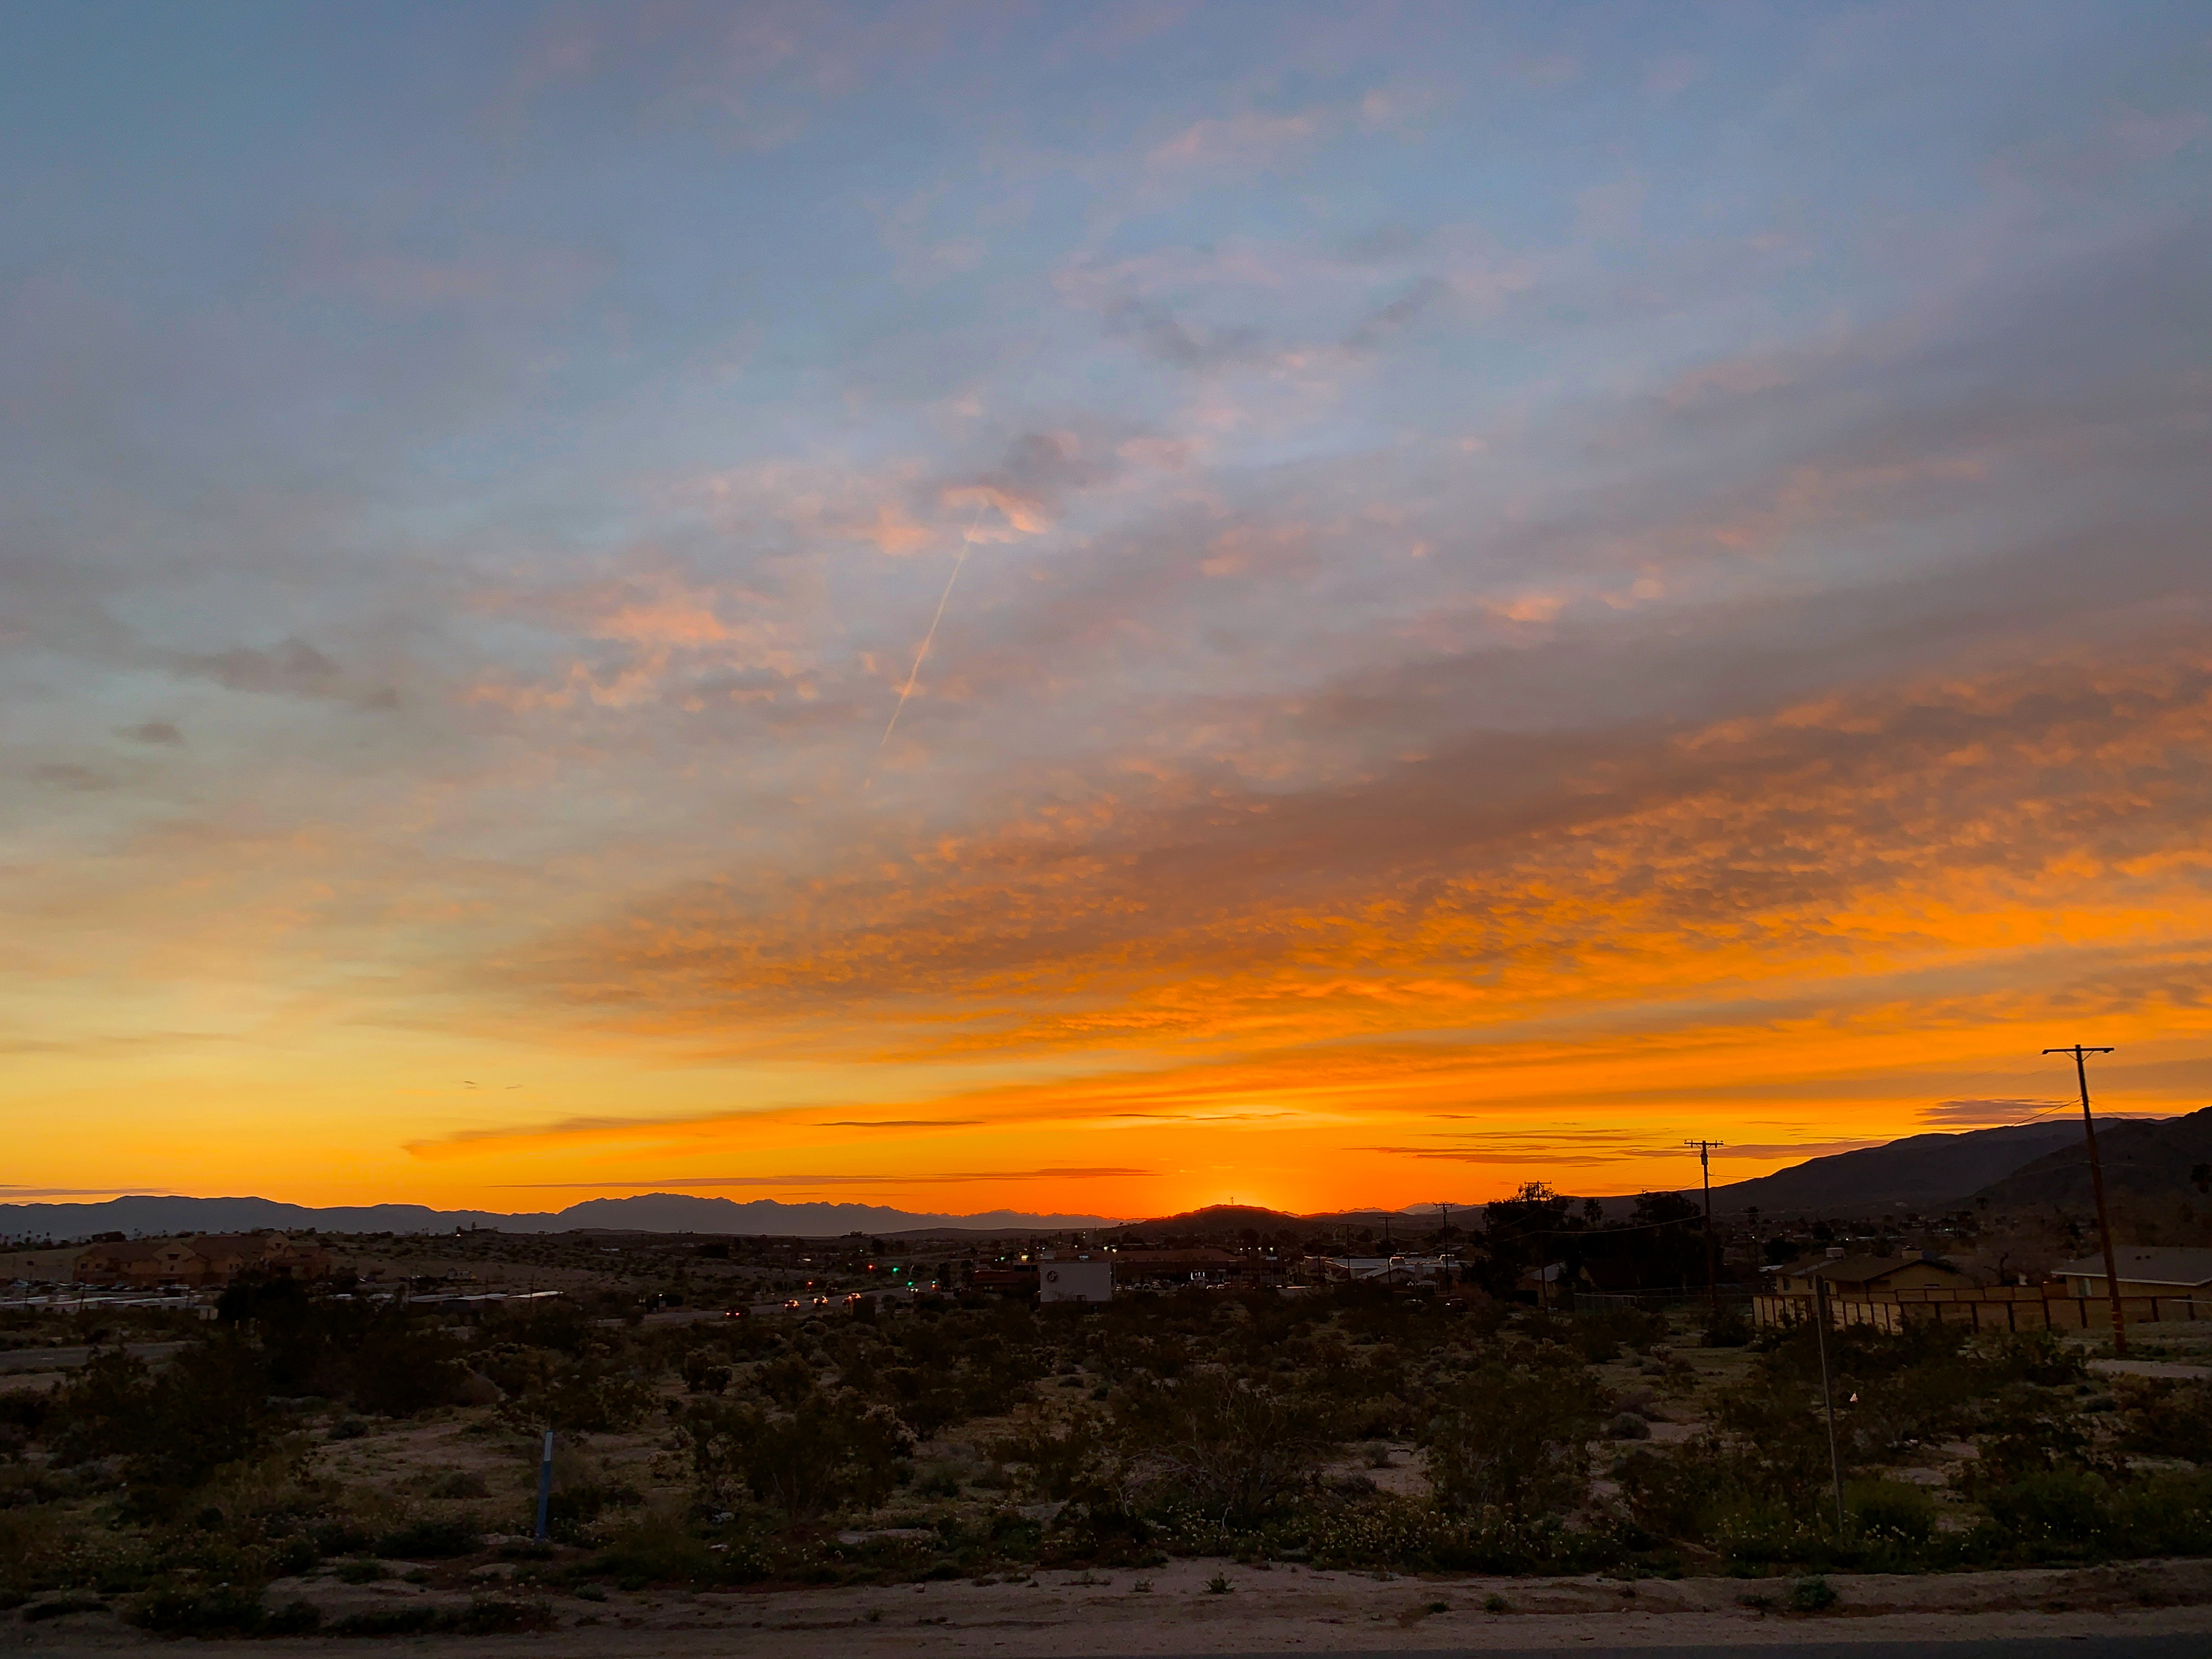 Sunrise at Joshua Tree Hotel